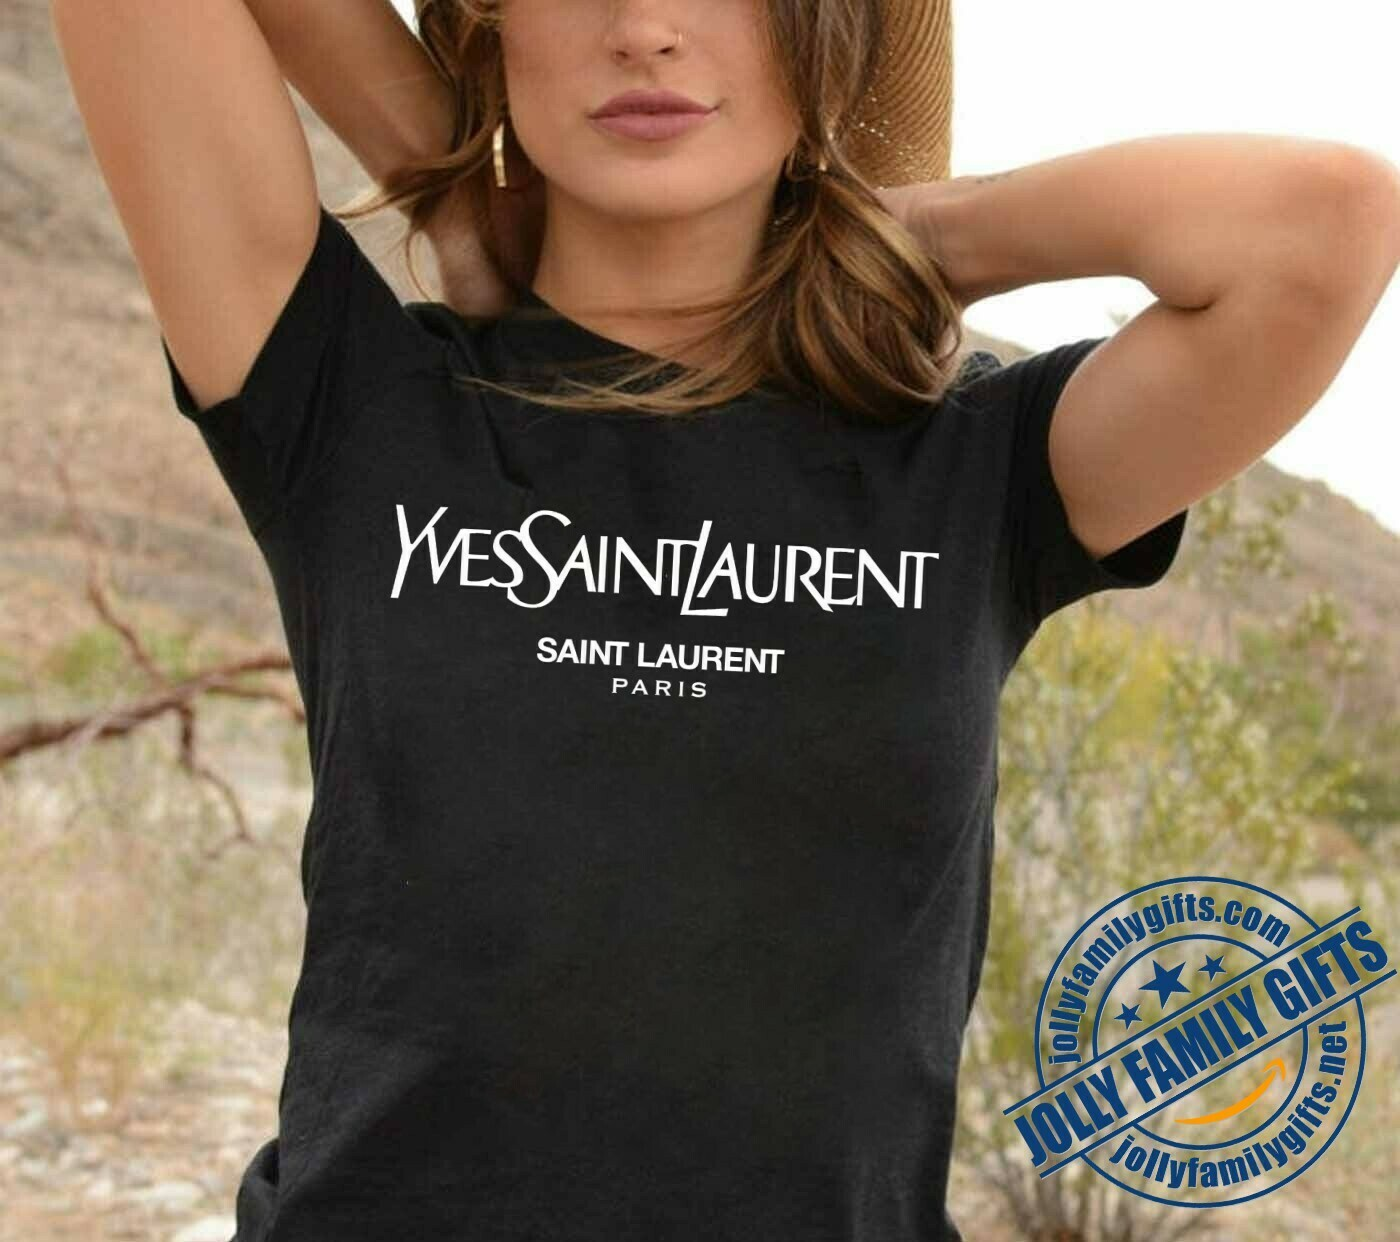 Fashion yvessaintlaurent Saint Laurent Paris Clothing Brand Sassy YSL tee Slogan t-shirt Fashion Shirts for Women Men  Unisex T-Shirt Hoodie Sweatshirt Sweater for Ladies Women Men Kids Youth Gifts